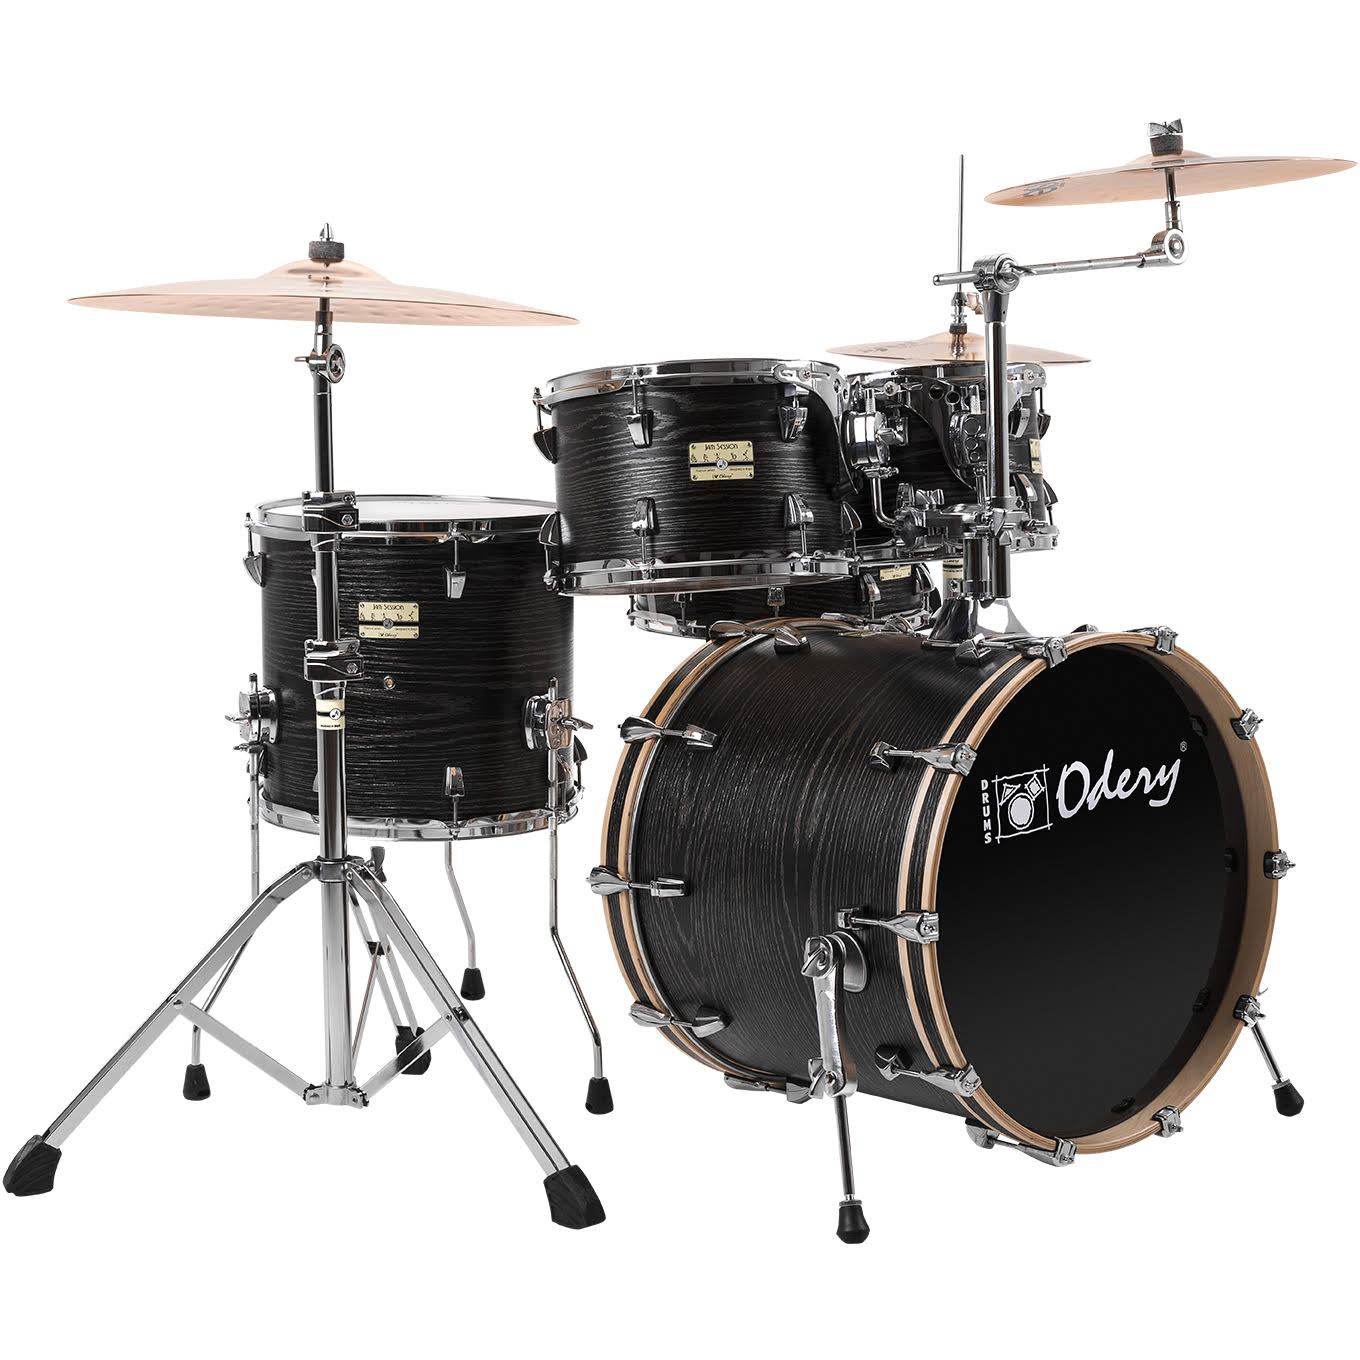 Odery FL180 Jam Session Black Ash 5 piece shell set with hardware